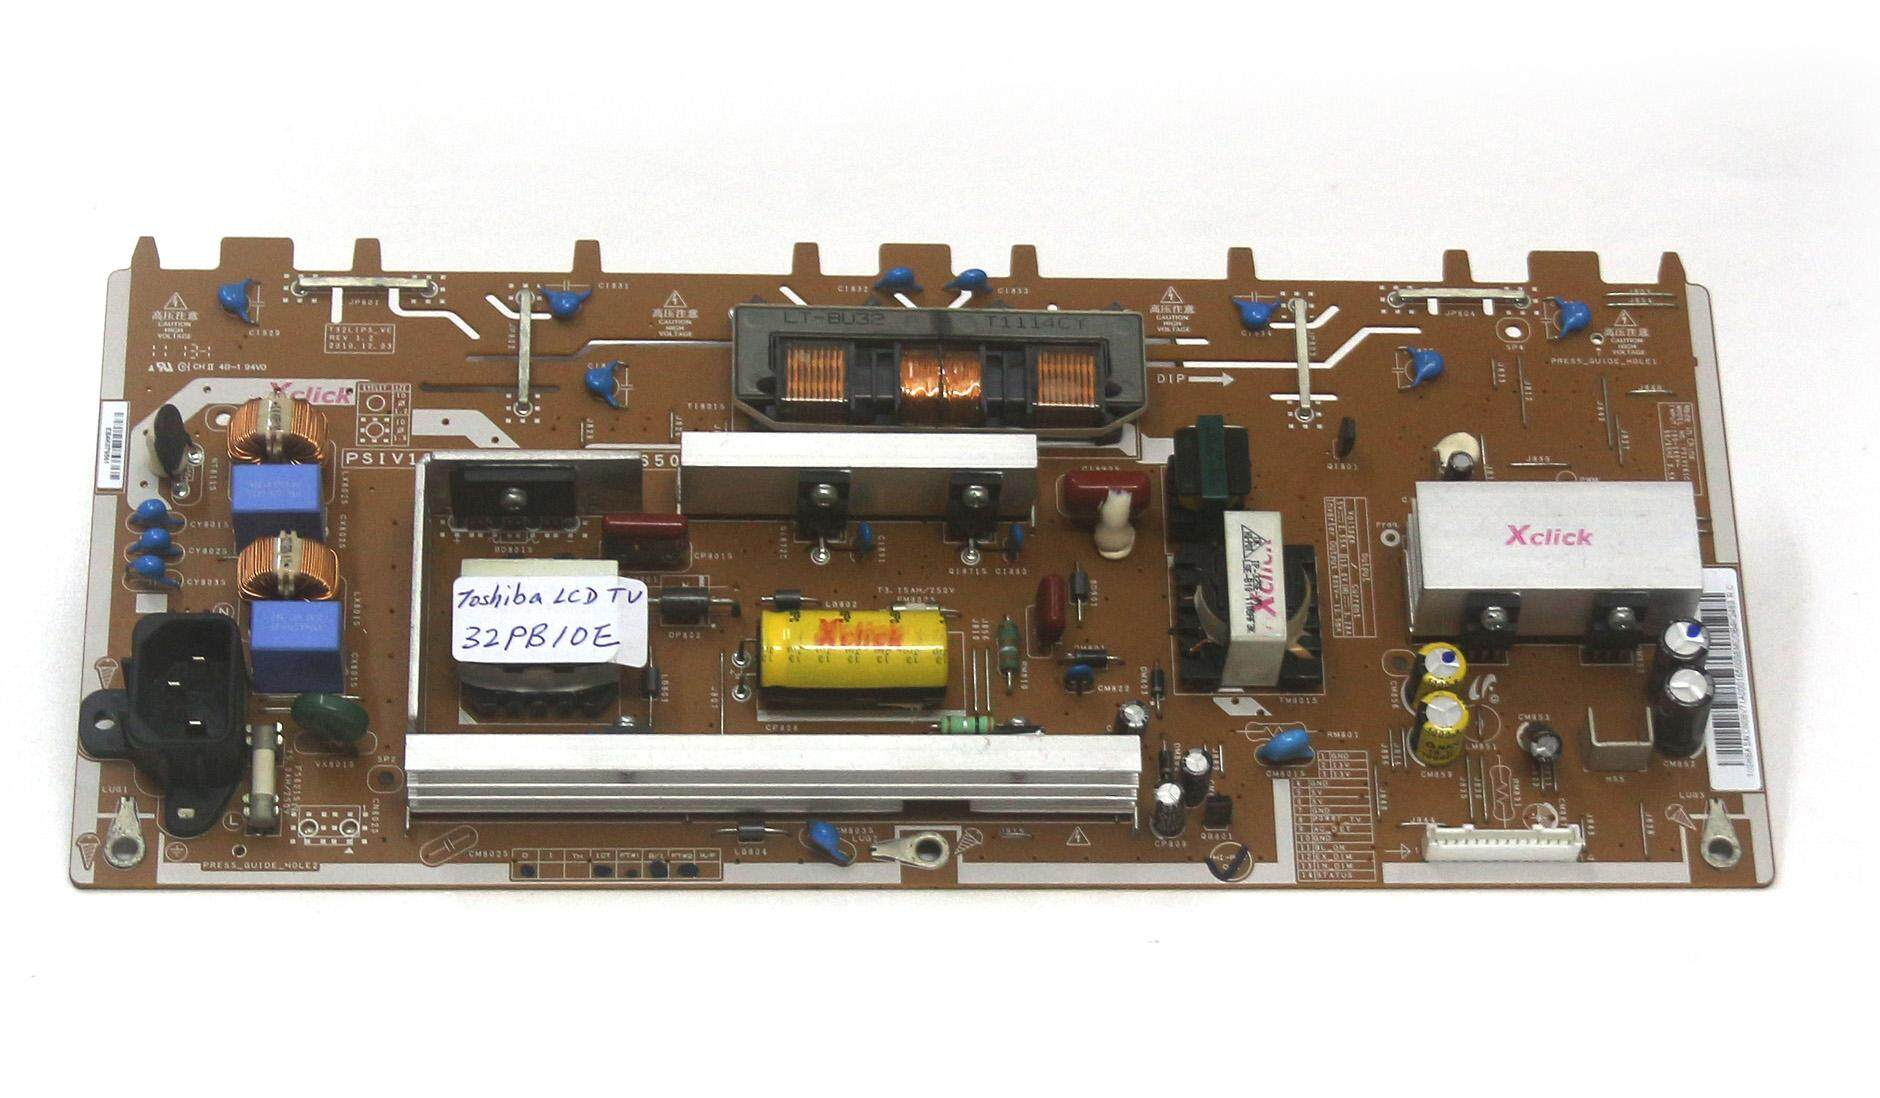 Power supply board For LCD TV Toshiba 32PB10E